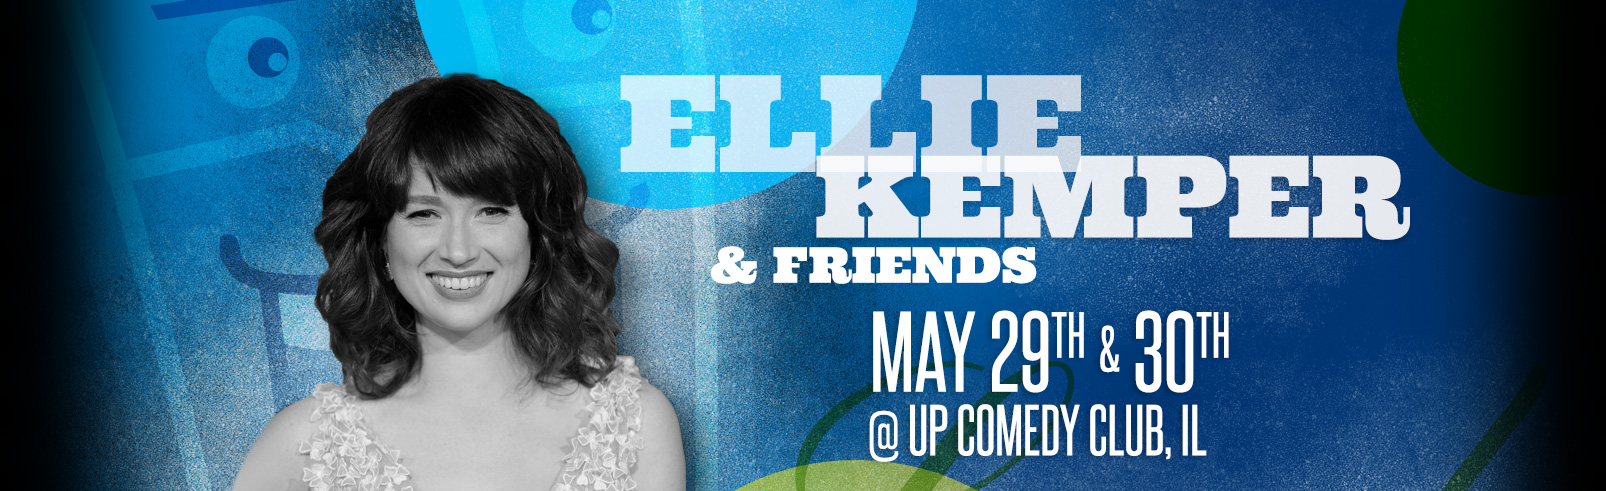 Ellie Kemper @ UP Comedy Club